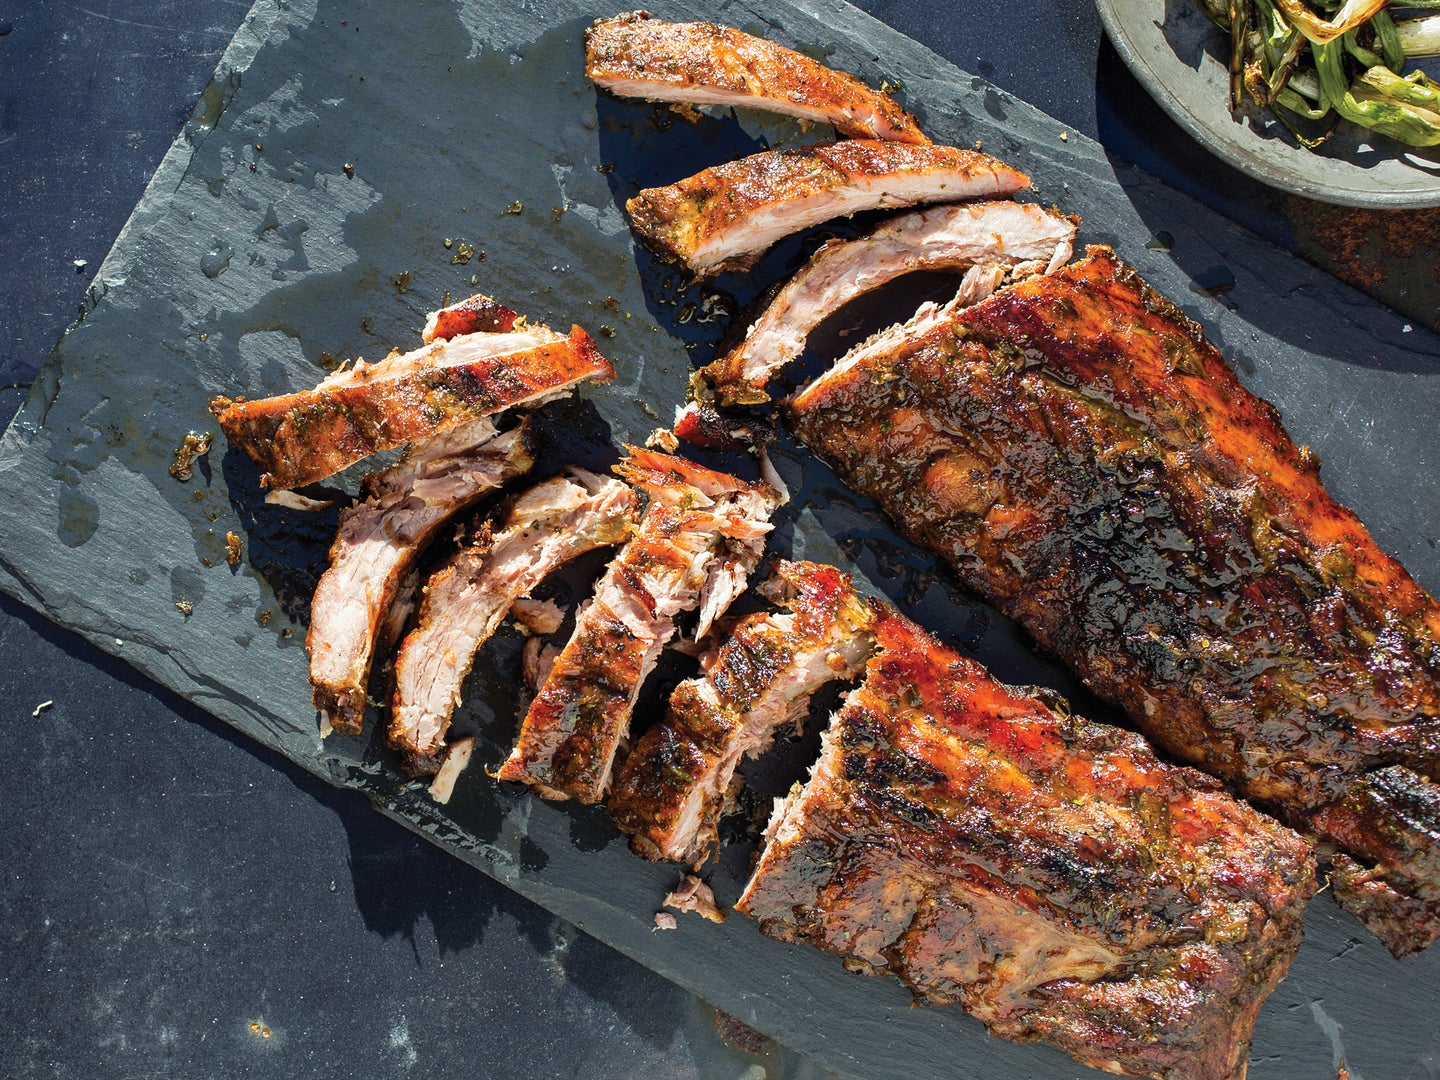 Grilling Smoked Ribs